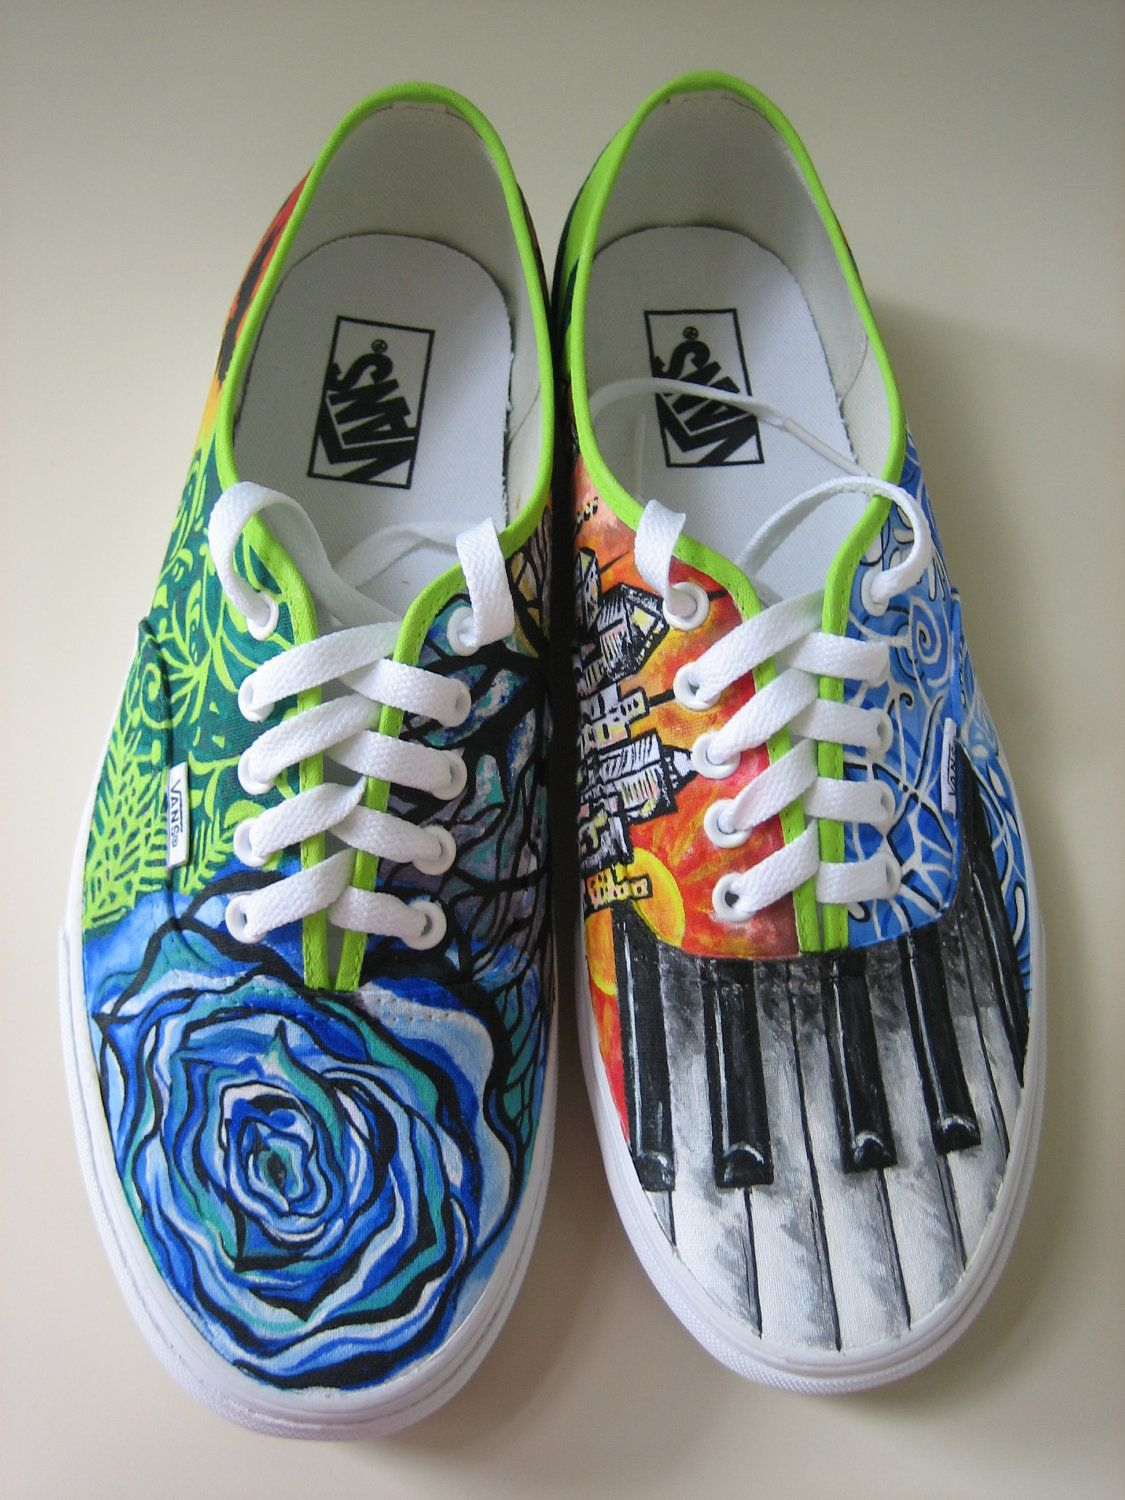 Items similar to Customized hand painted shoes on Etsy